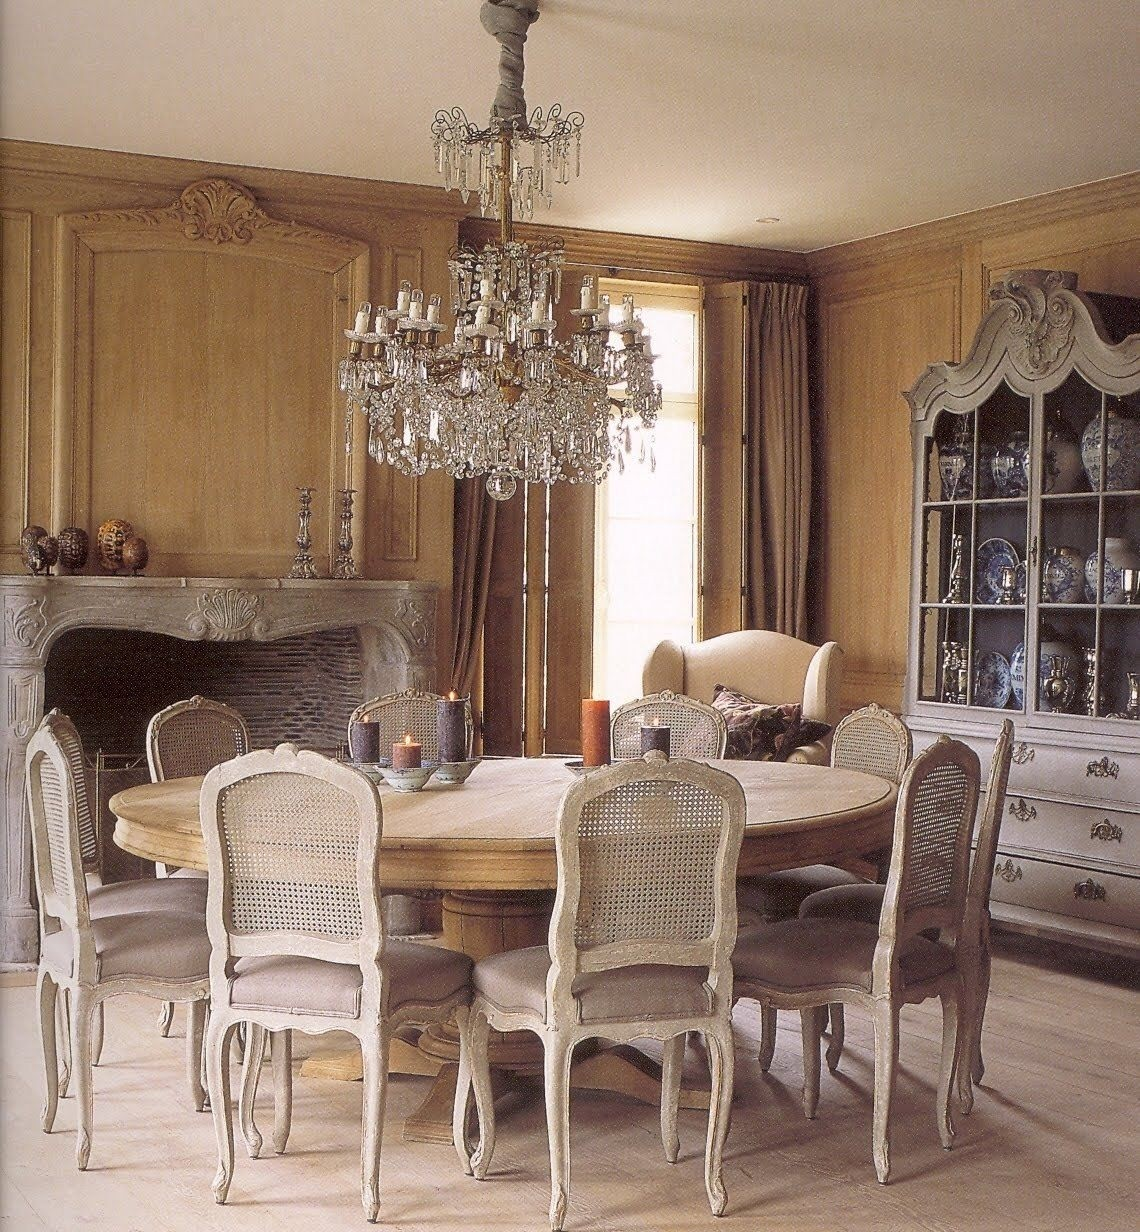 Ordinaire Large Round Dining Table Seats 10   Ideas On Foter